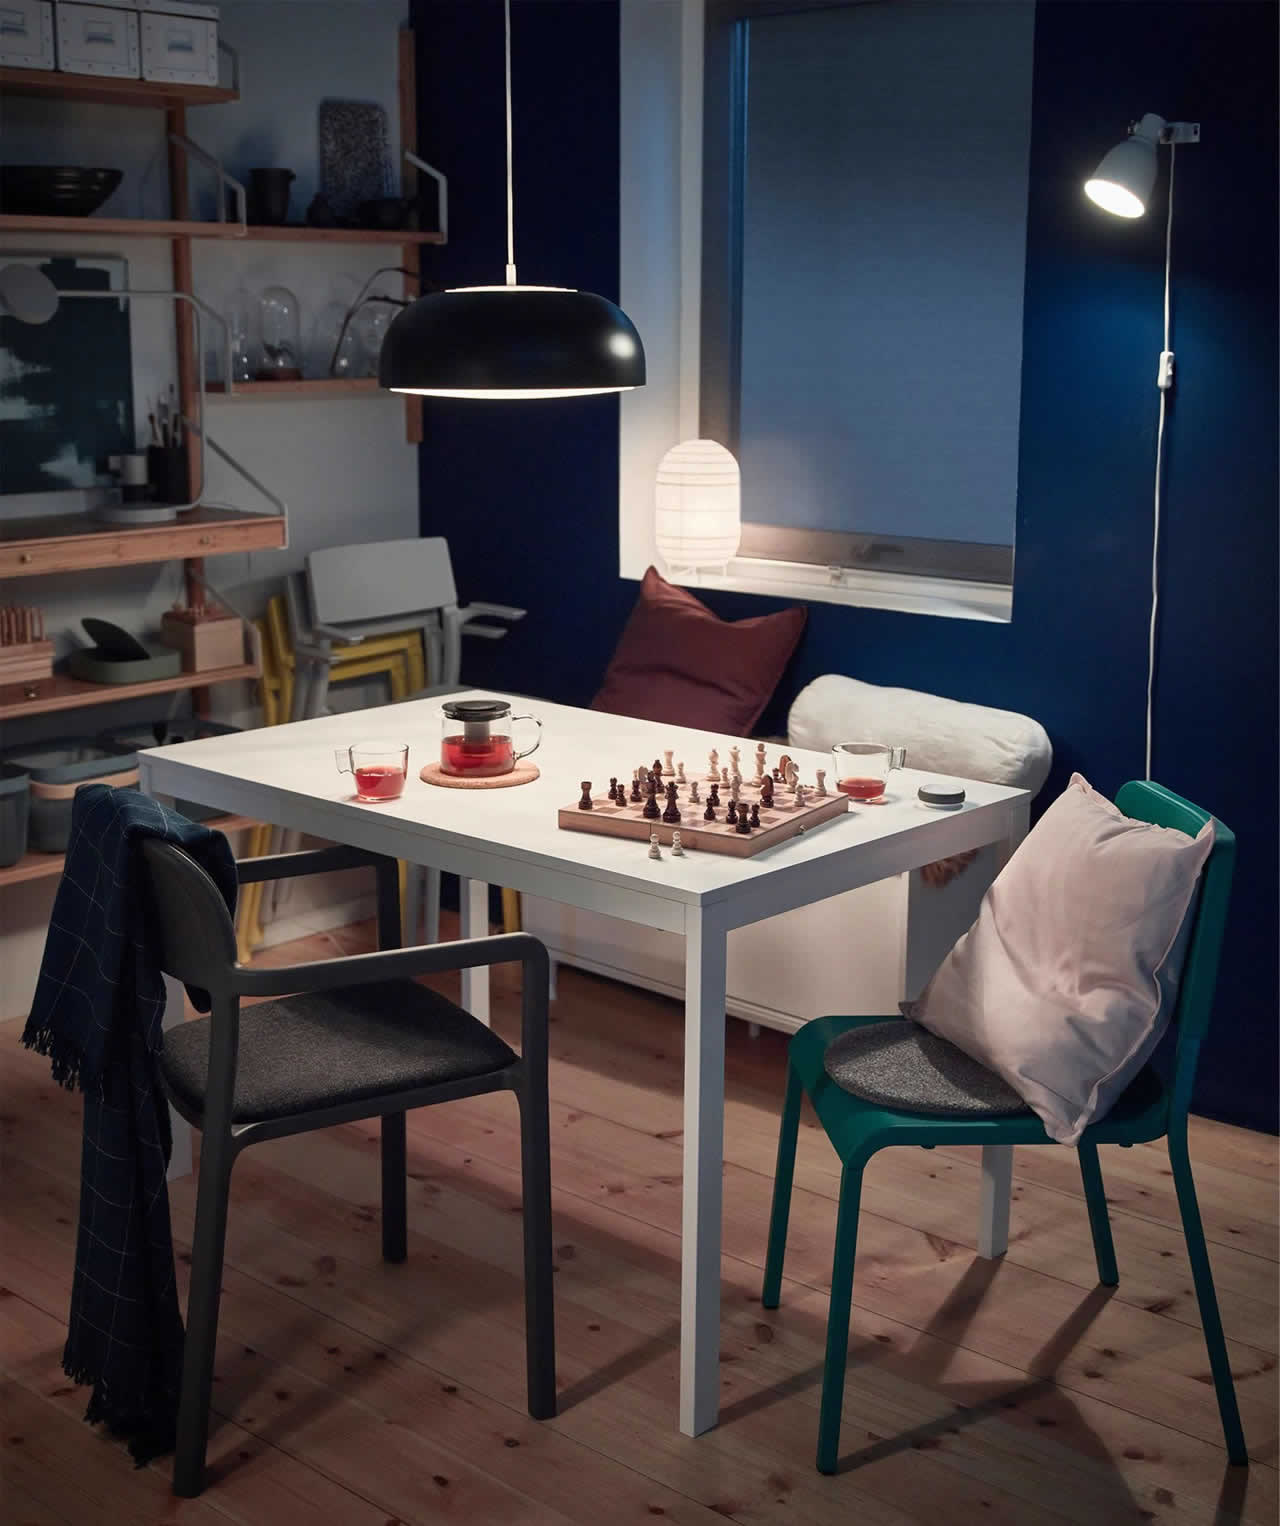 IKEA Ideas - A 24-hour dining room